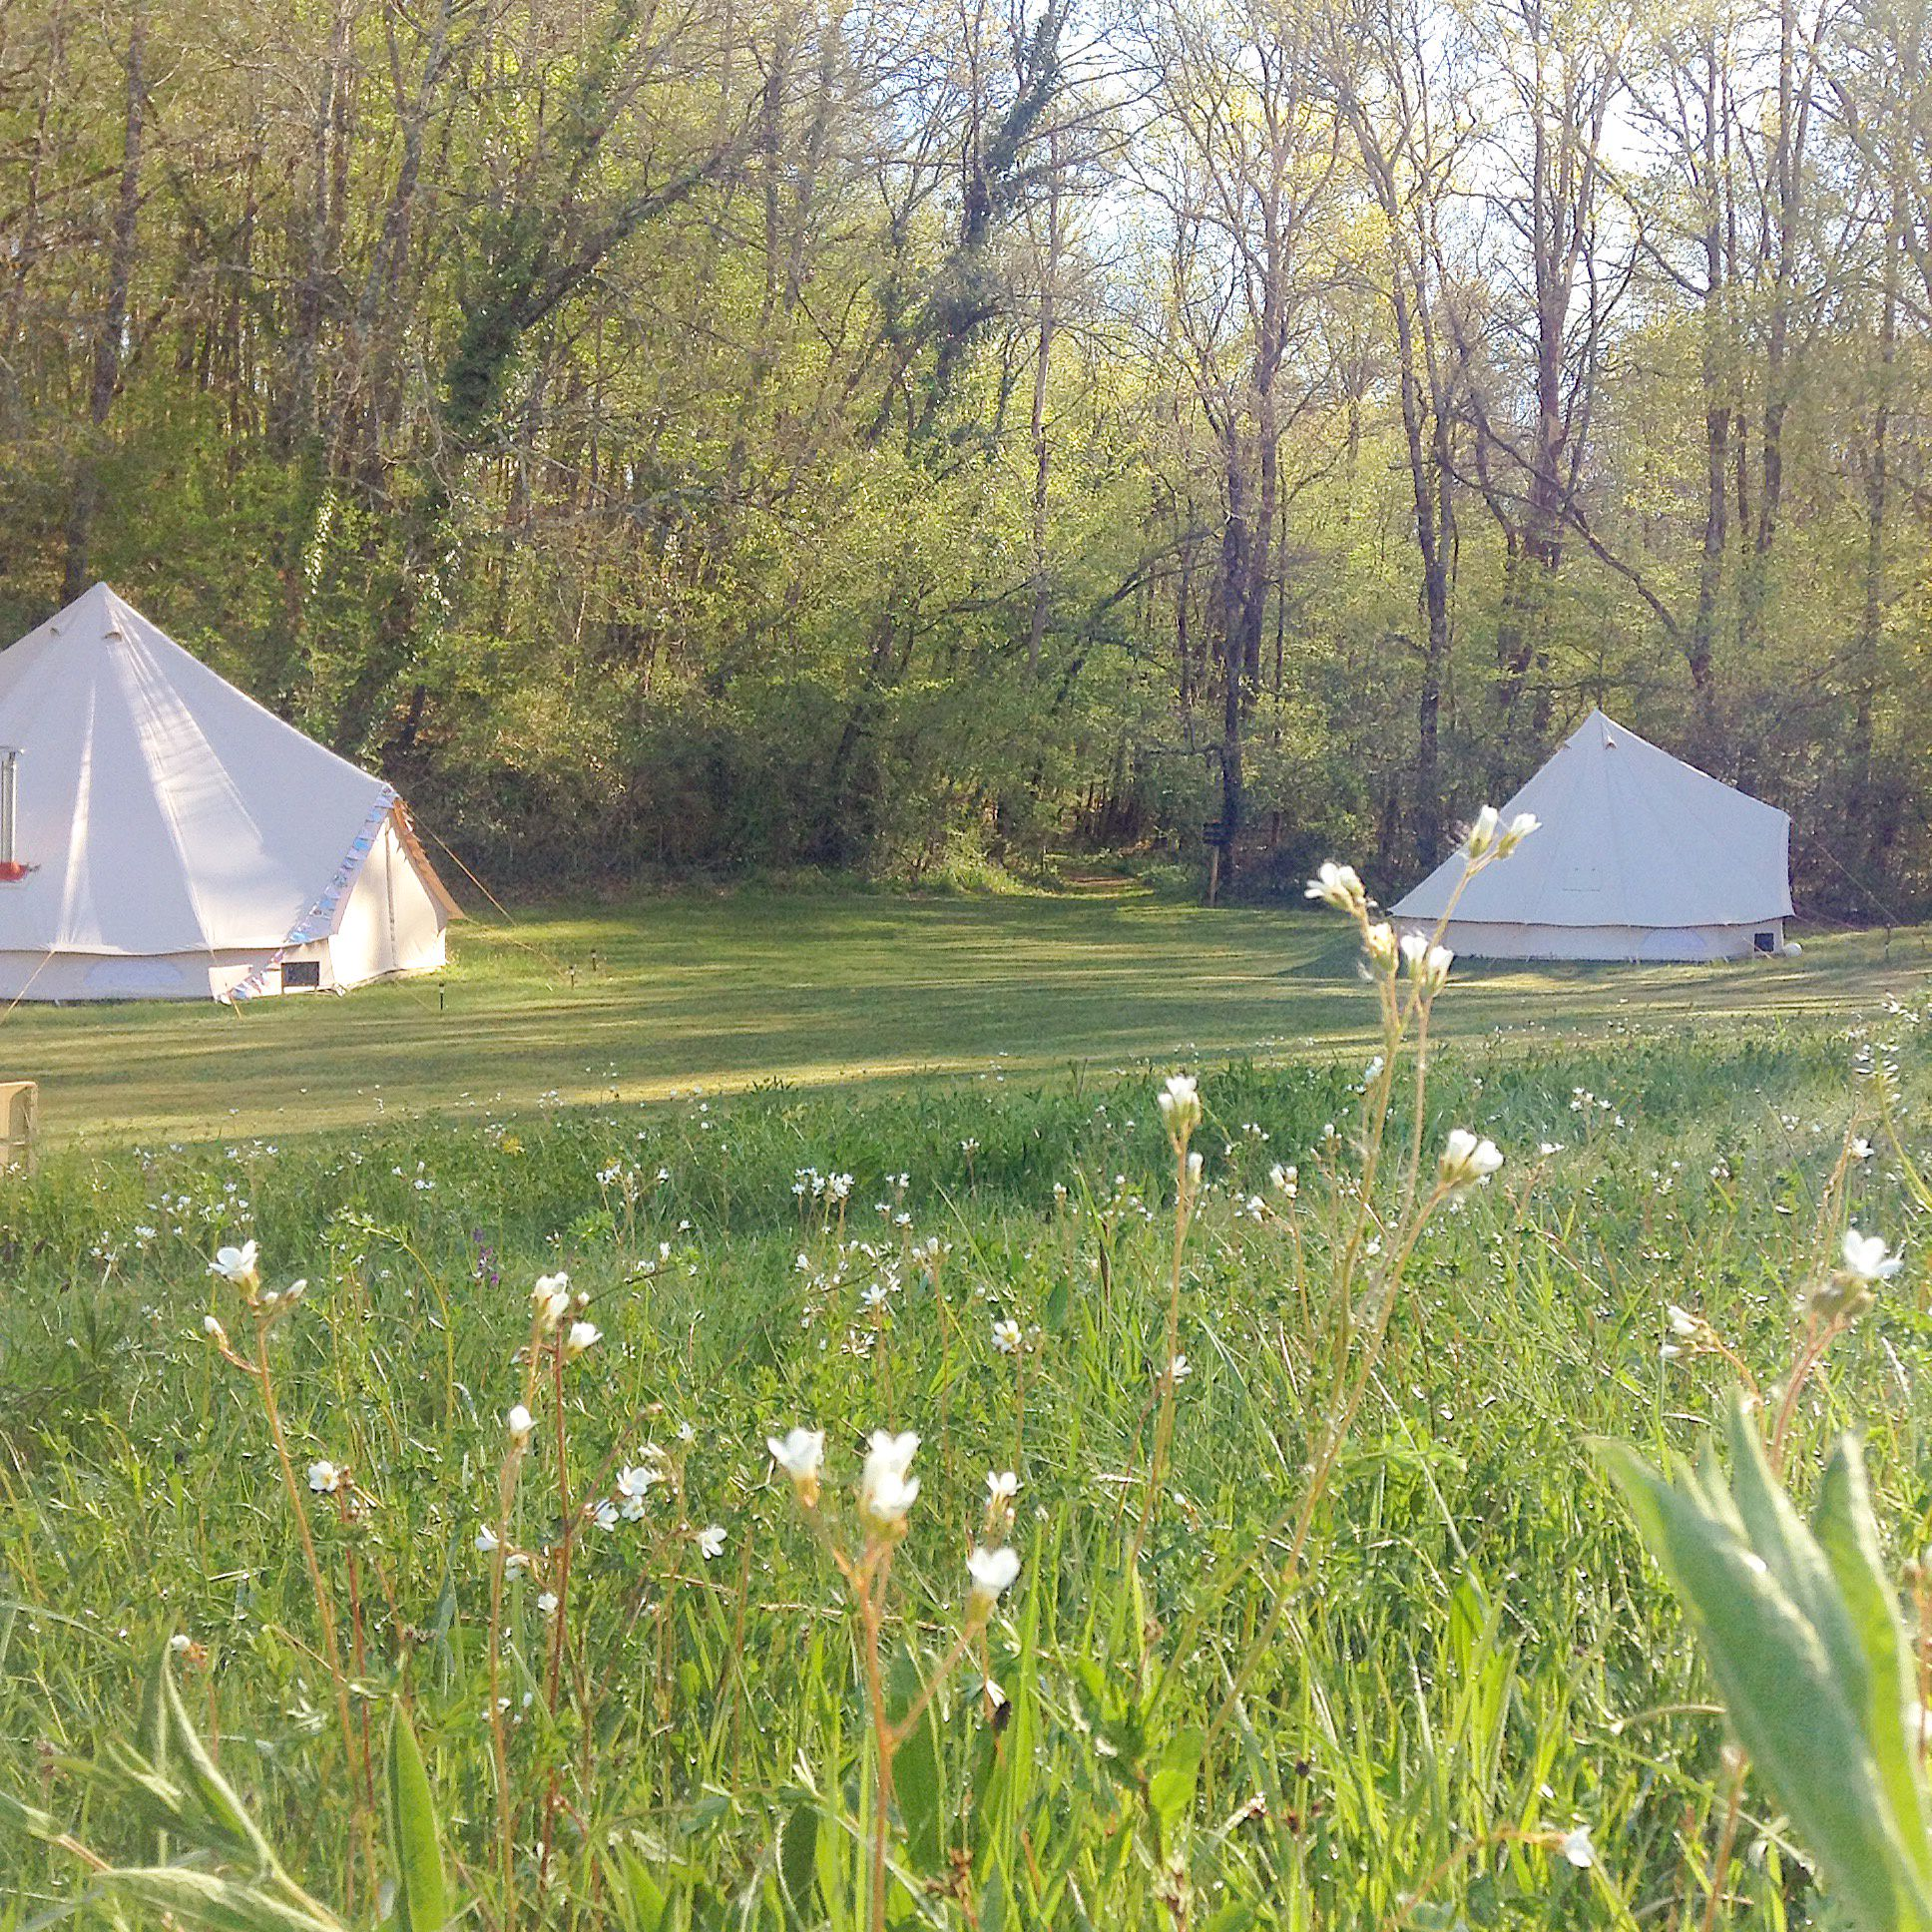 Campsites in Dordogne - campsites europe france aquitaine dordogne at Cool Camping